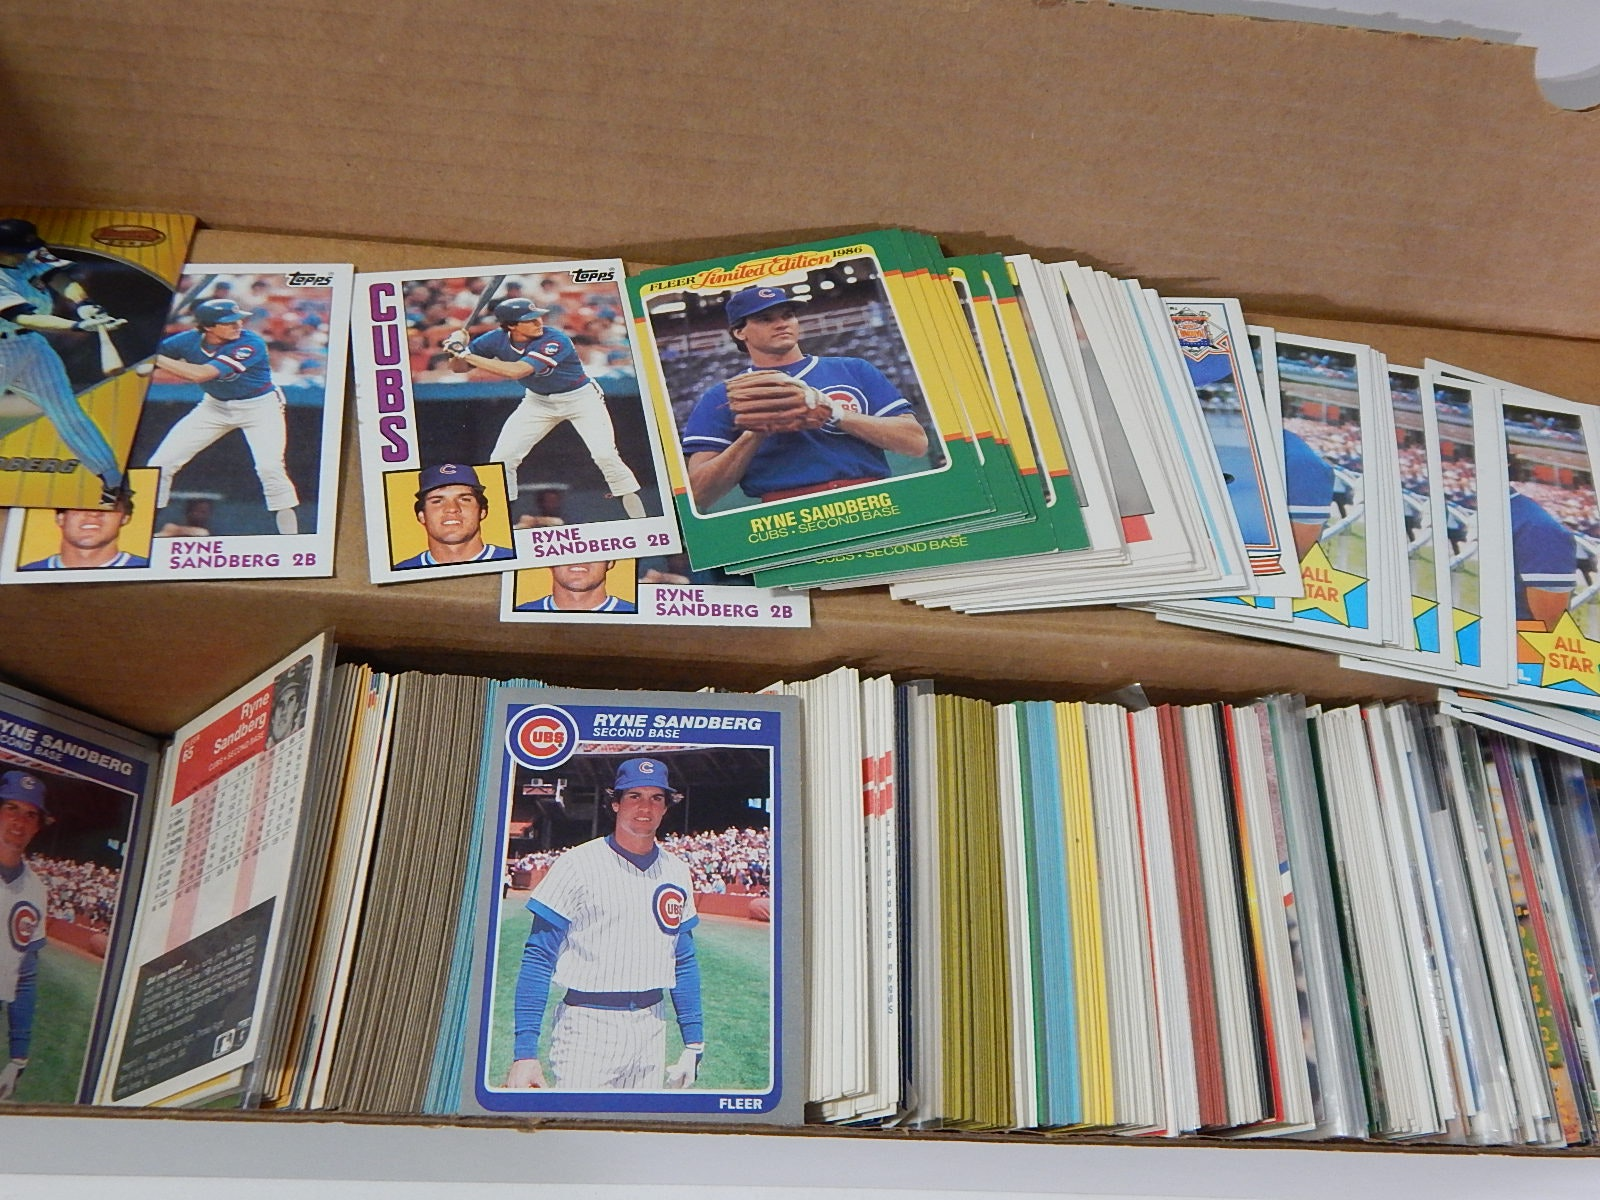 Over 300 Hall of Fame Ryne Sandberg Baseball Cards with Rookies and Inserts